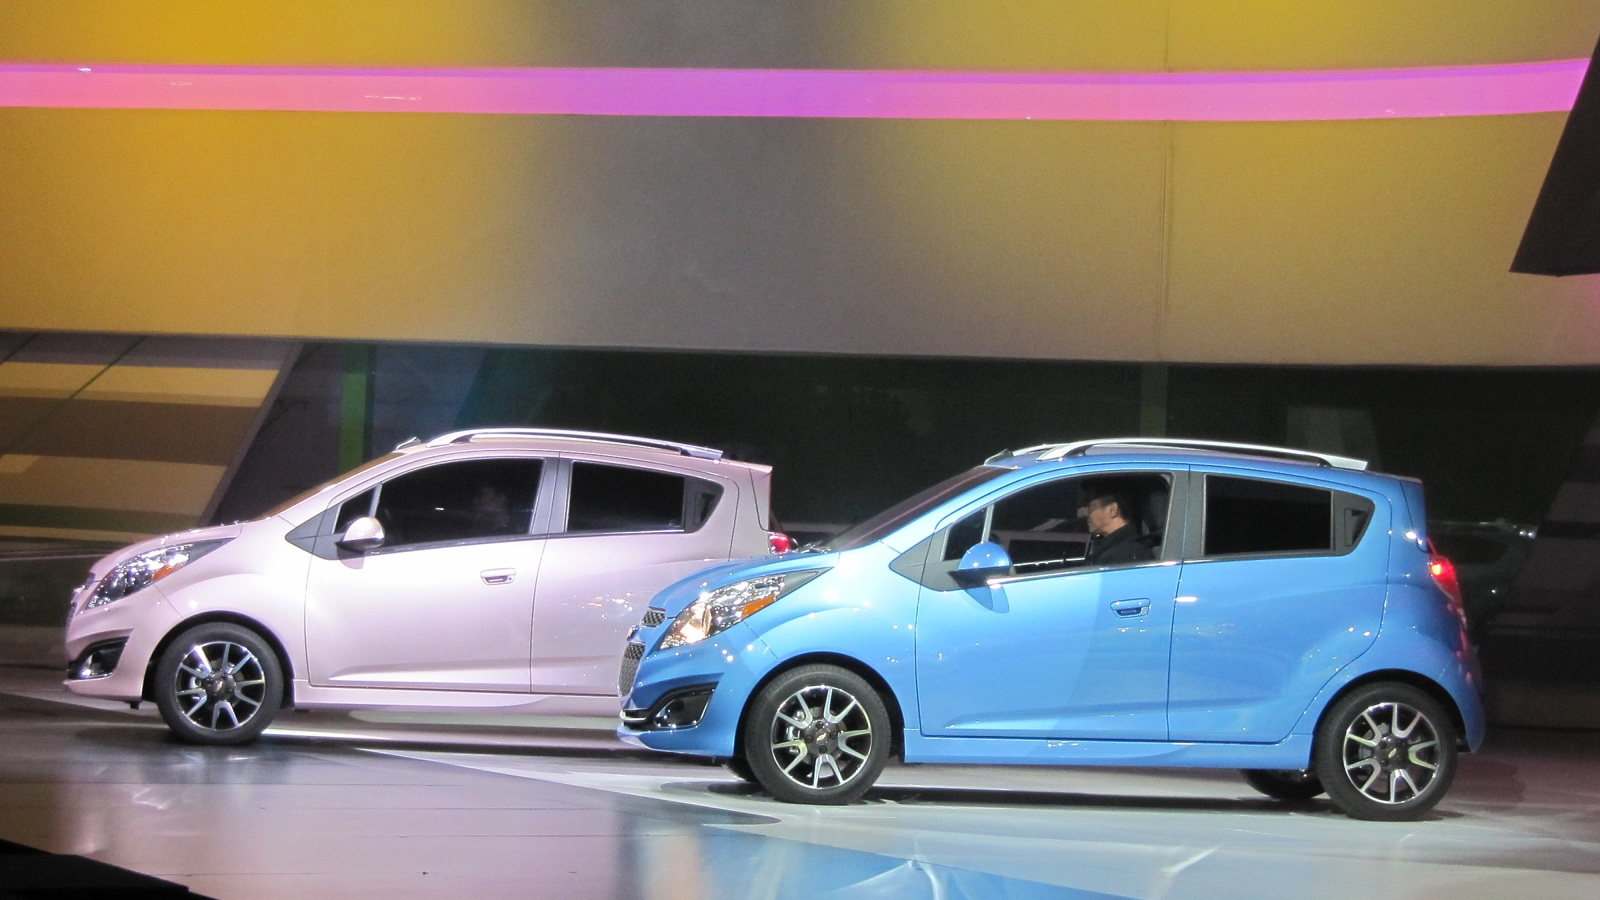 2013 Chevrolet Spark shown at Los Angeles Auto Show, Nov 2011